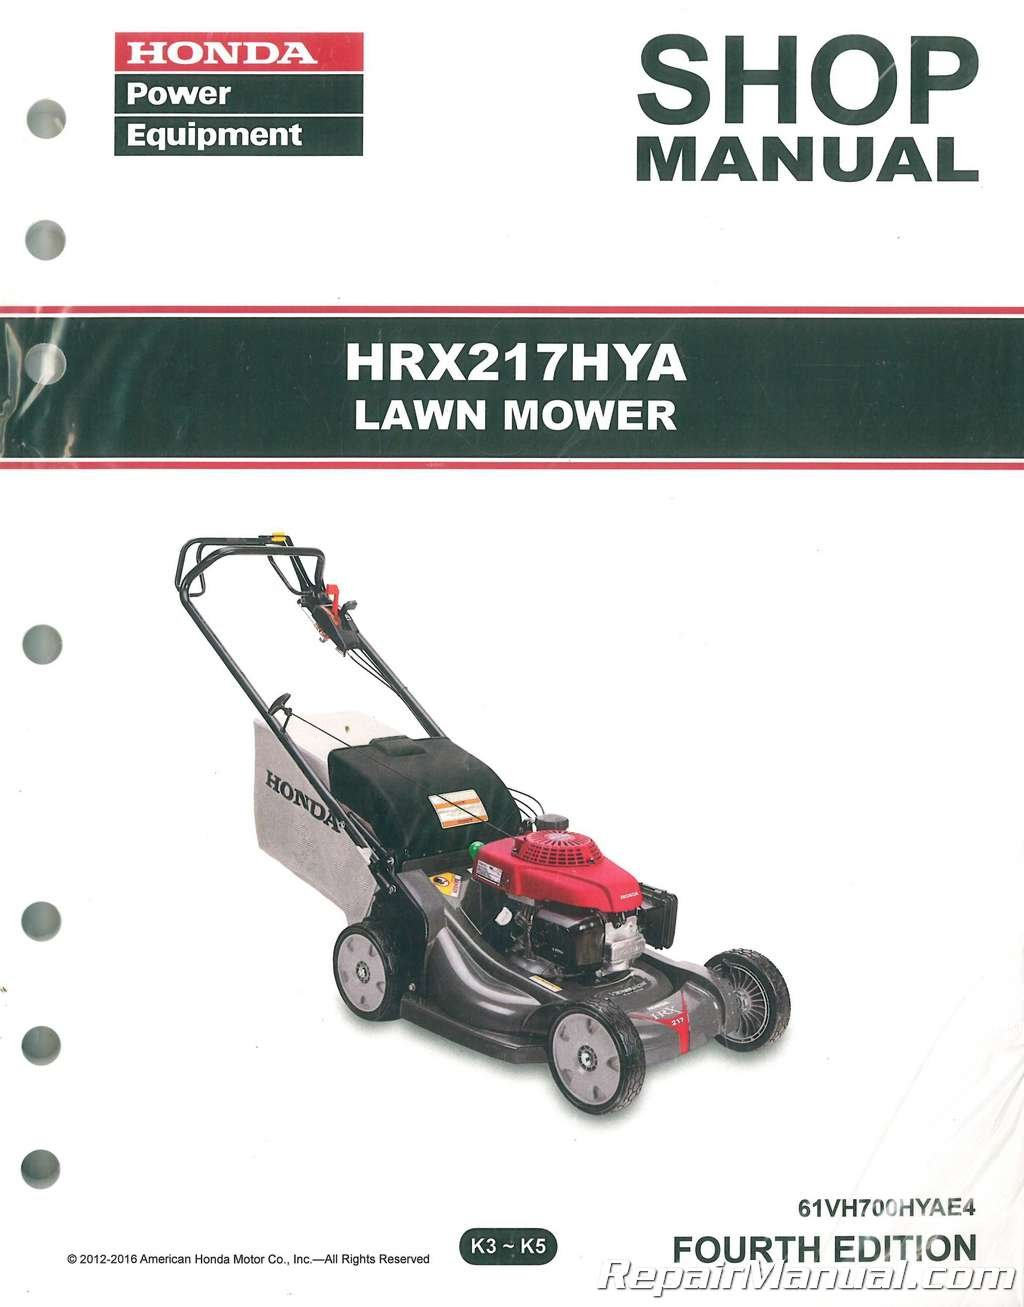 61VH700HYAE3 Honda HRX217 HYA Lawn Mower Repair Service Shop Manual:  Manufacturer: Amazon.com: Books